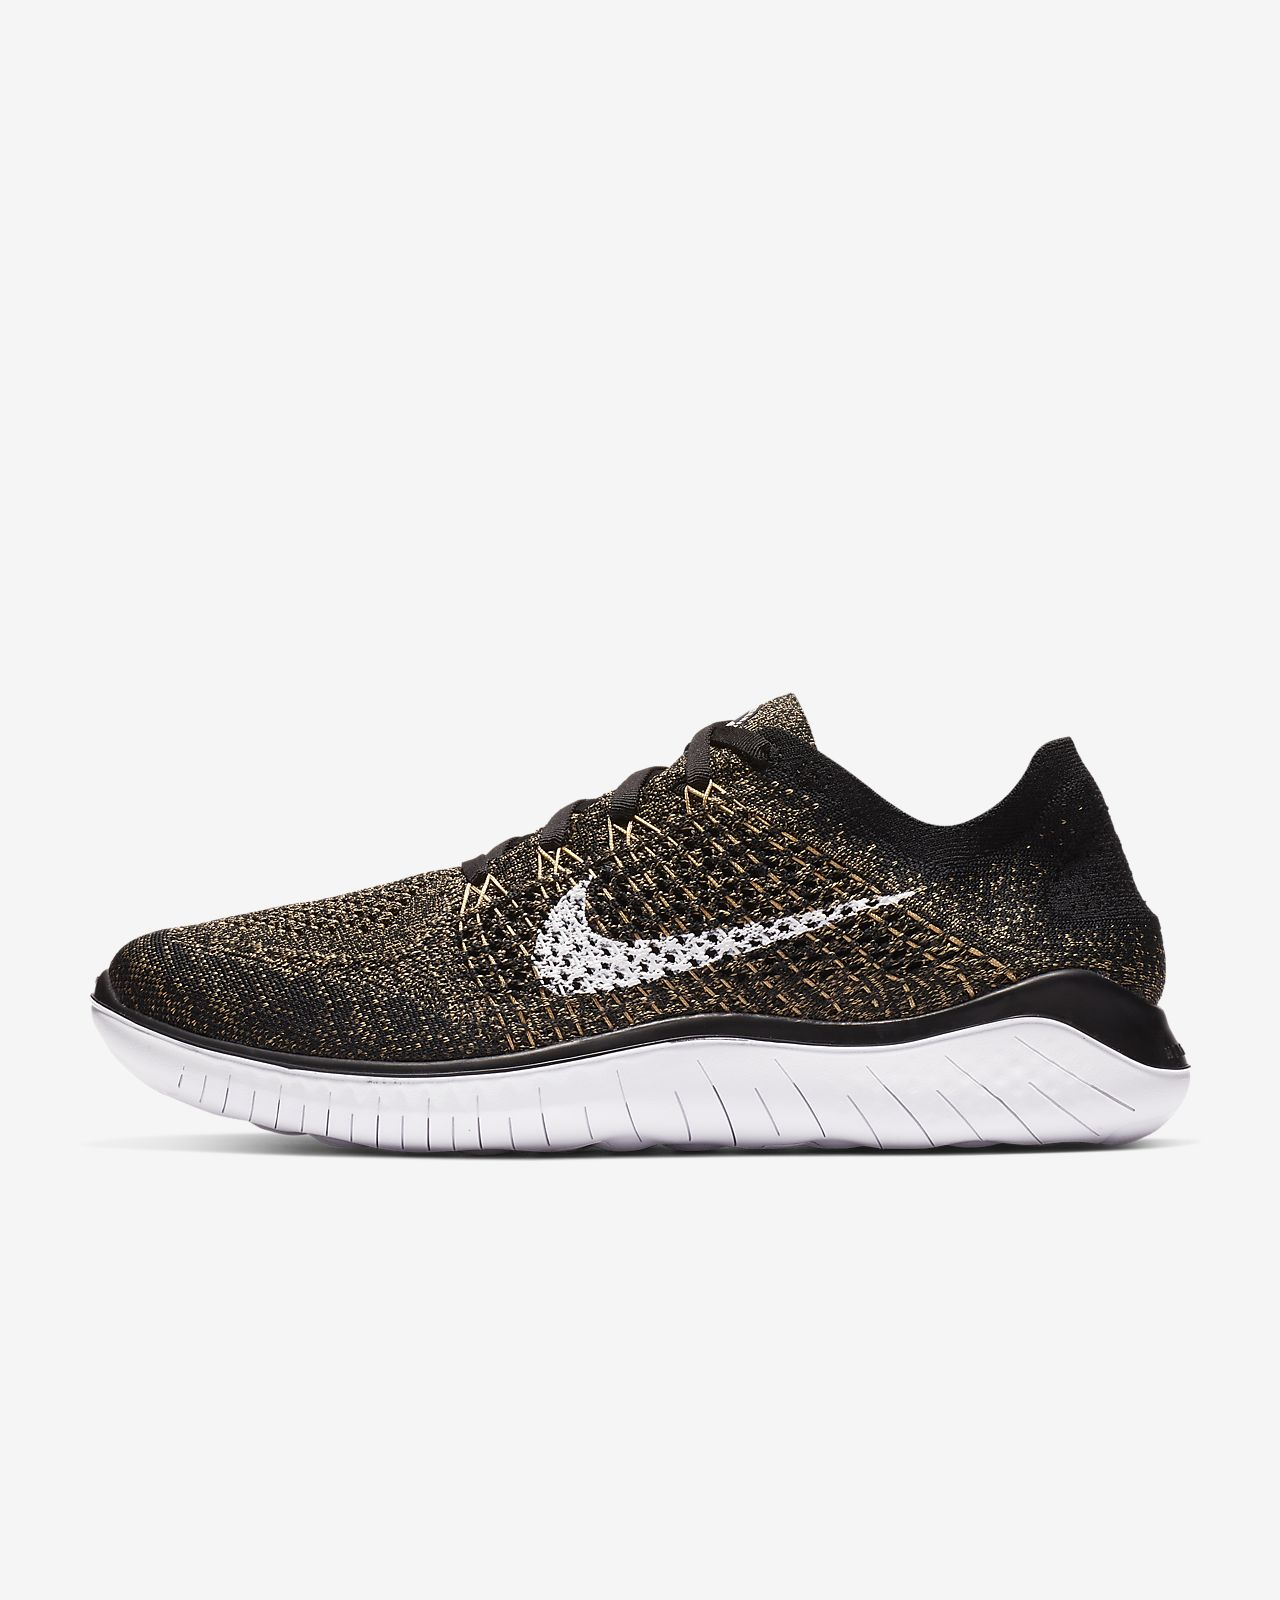 official photos 89a8f a9d8c Nike Free RN Flyknit 2018 Men's Running Shoe. Nike.com SG